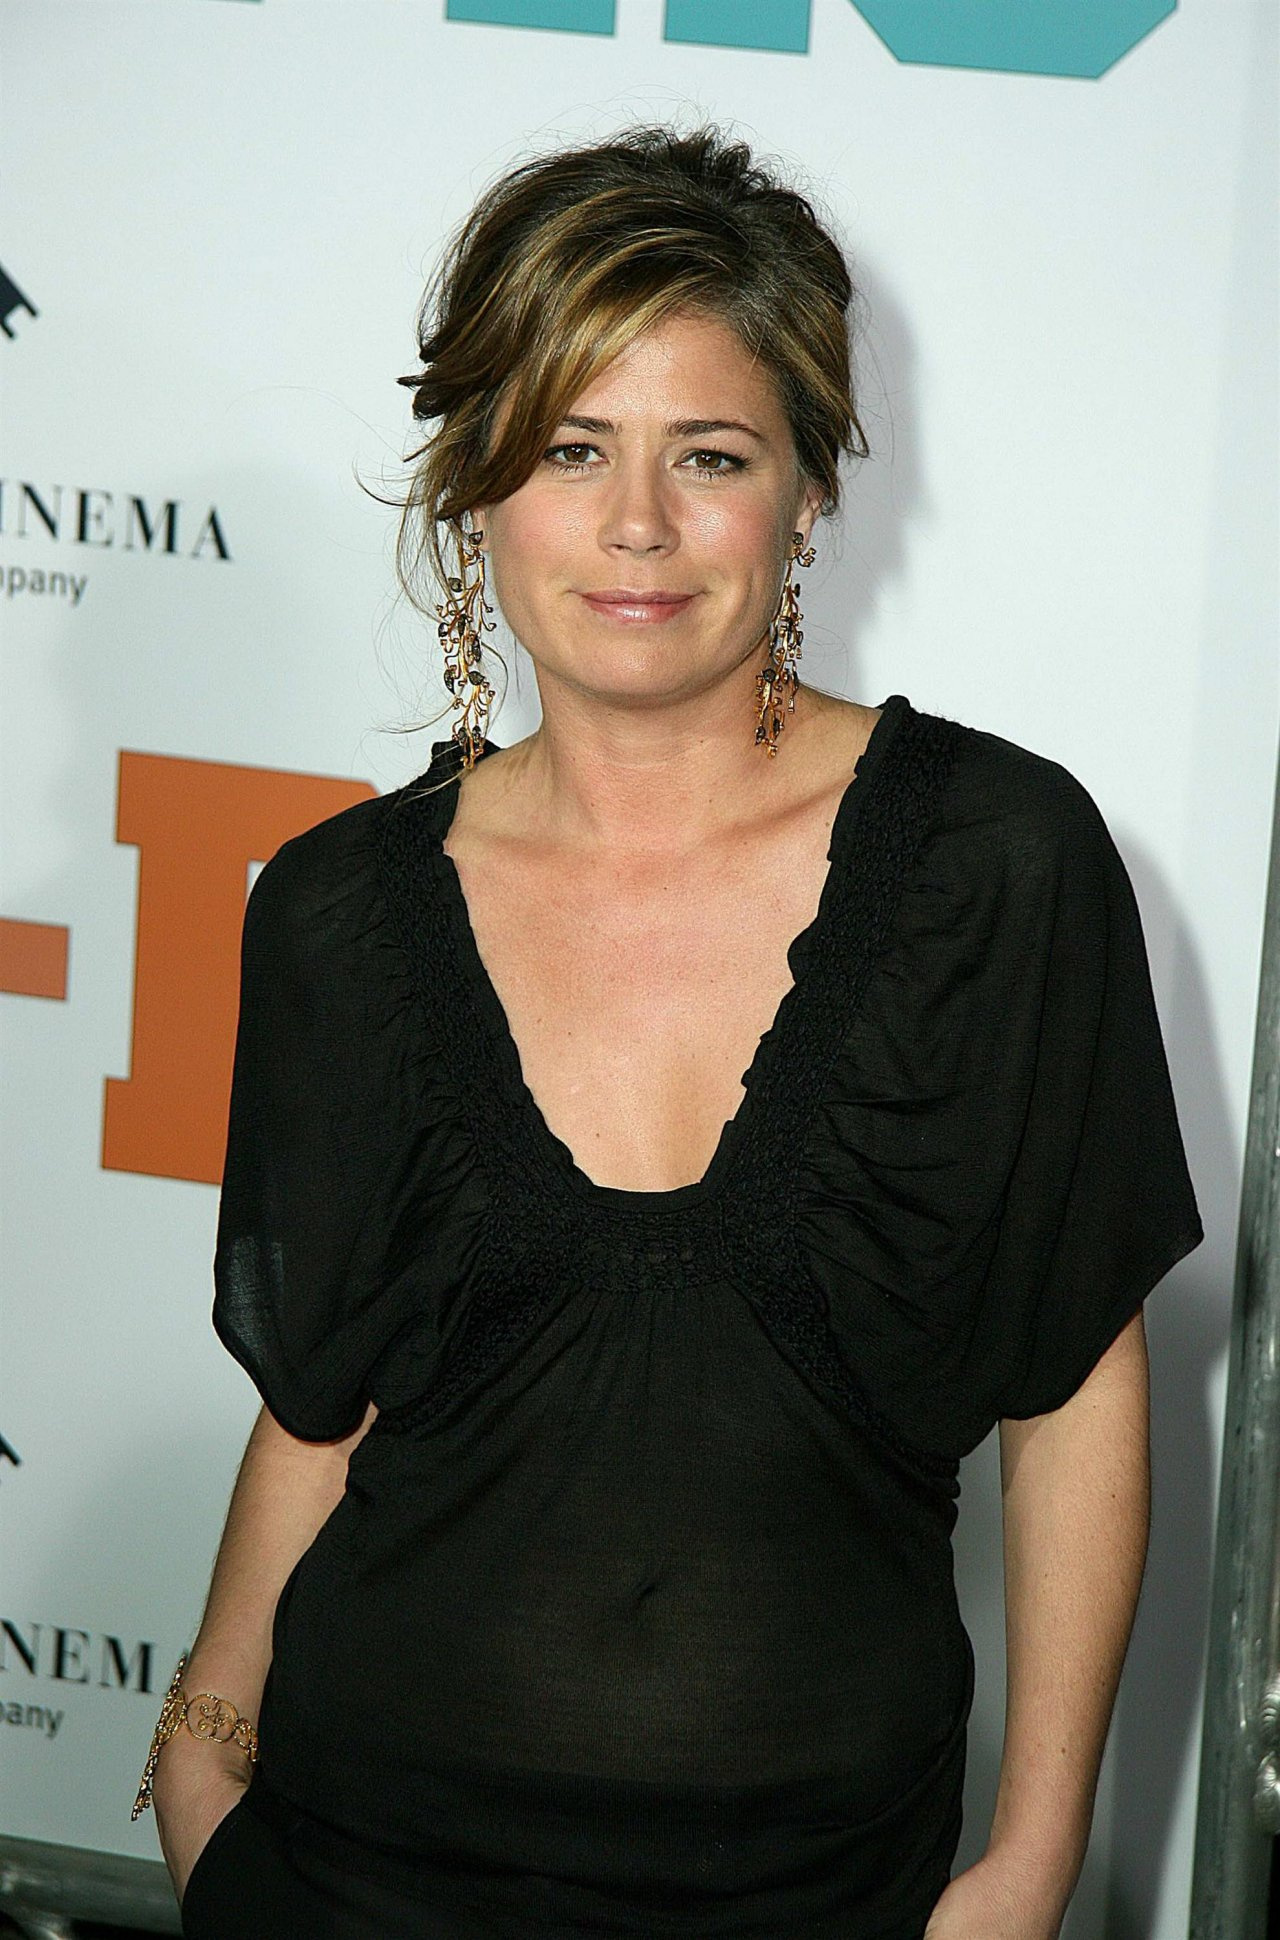 Maura Tierney minister